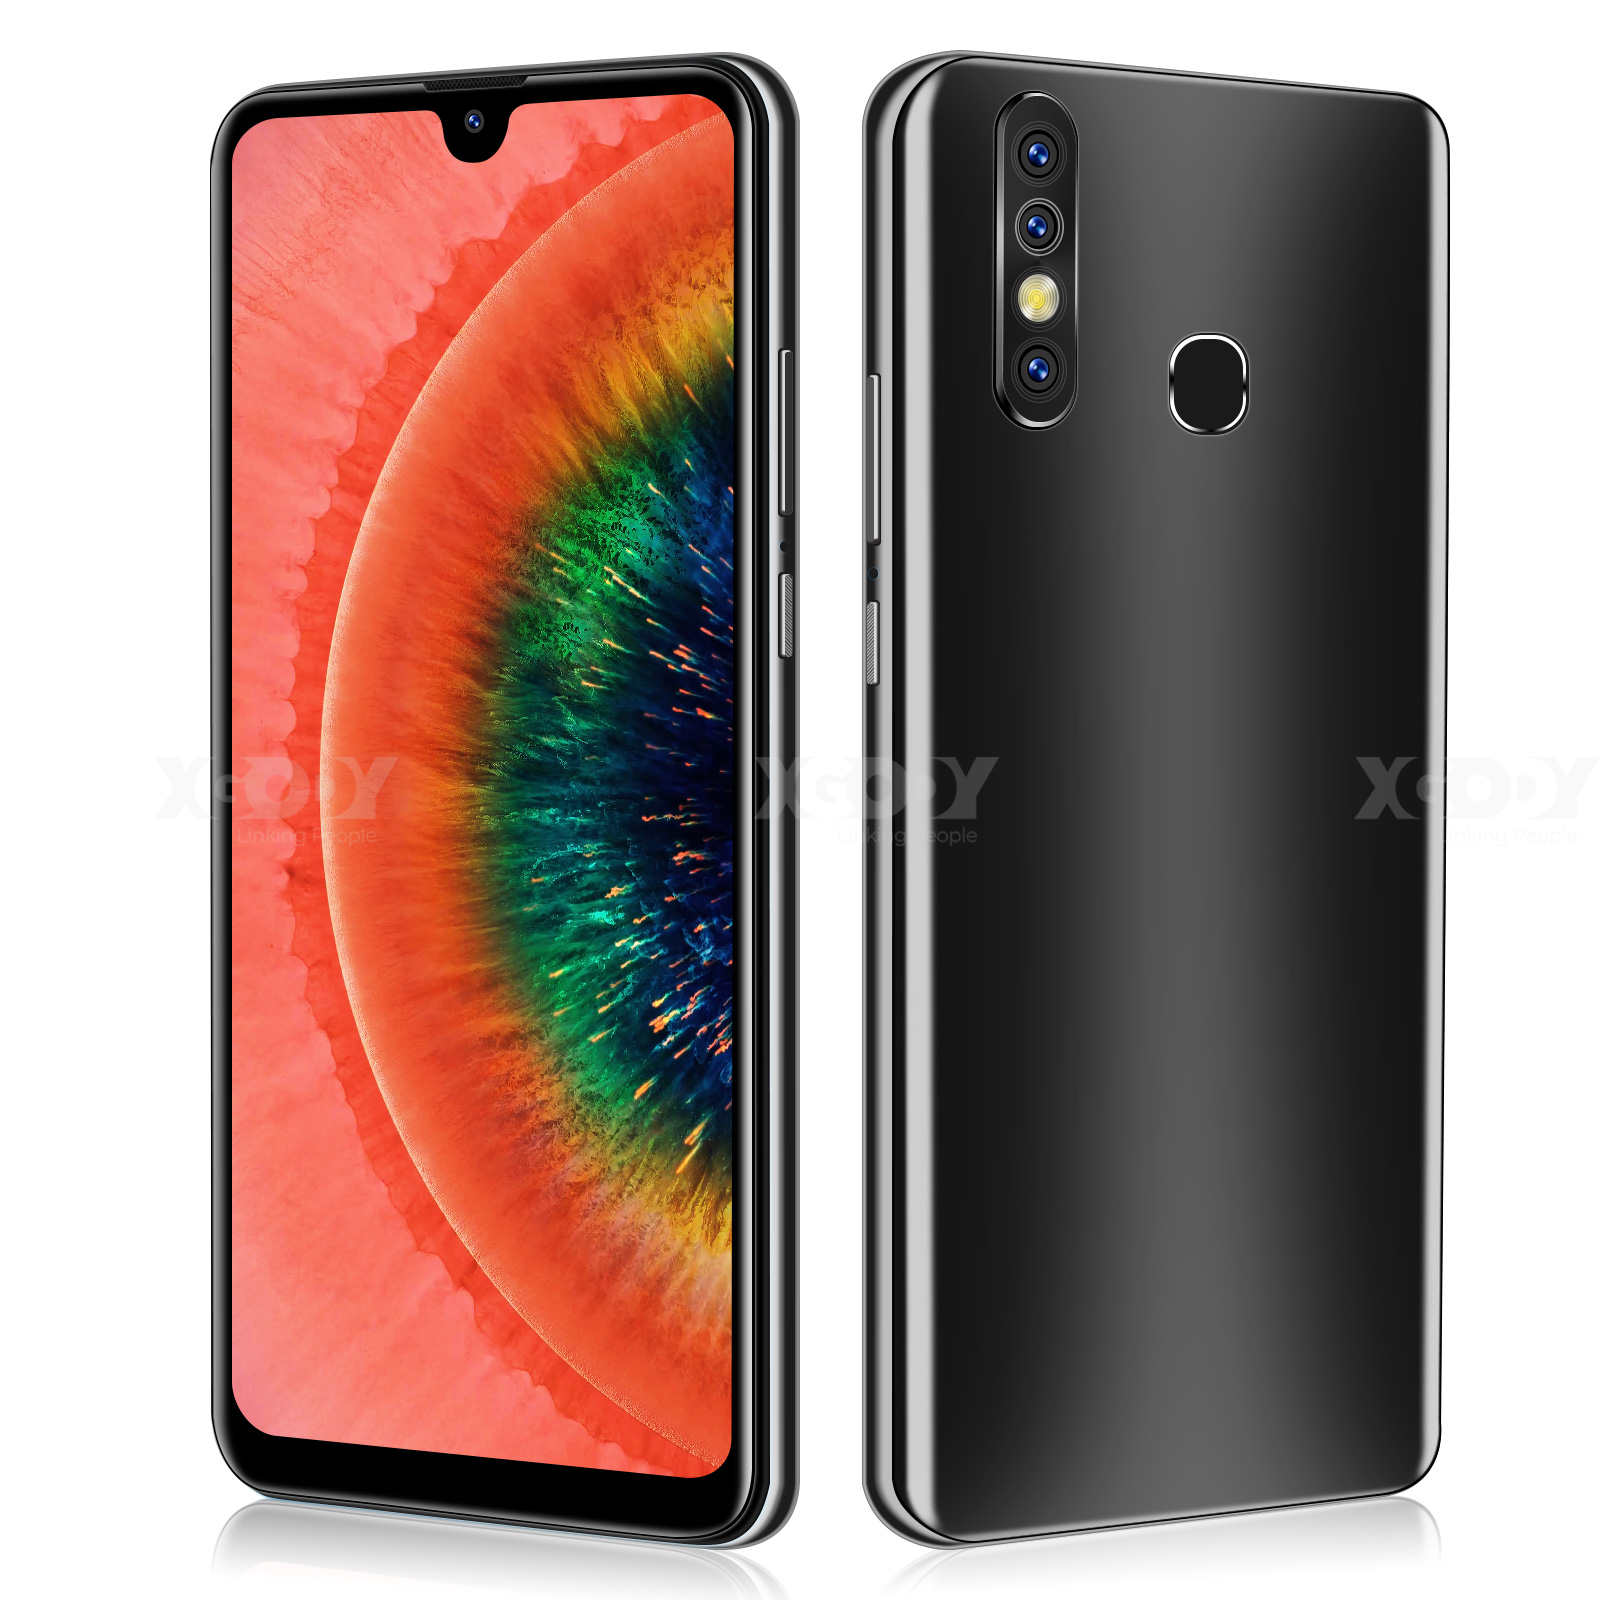 "XGODY A70s 3G Smartphone 7.2""  Android 9.0 1GB RAM 4GB ROM 5MP Camera Quad Core Dual SIM GPS WiFi Mobile Phones CellPhone 5"